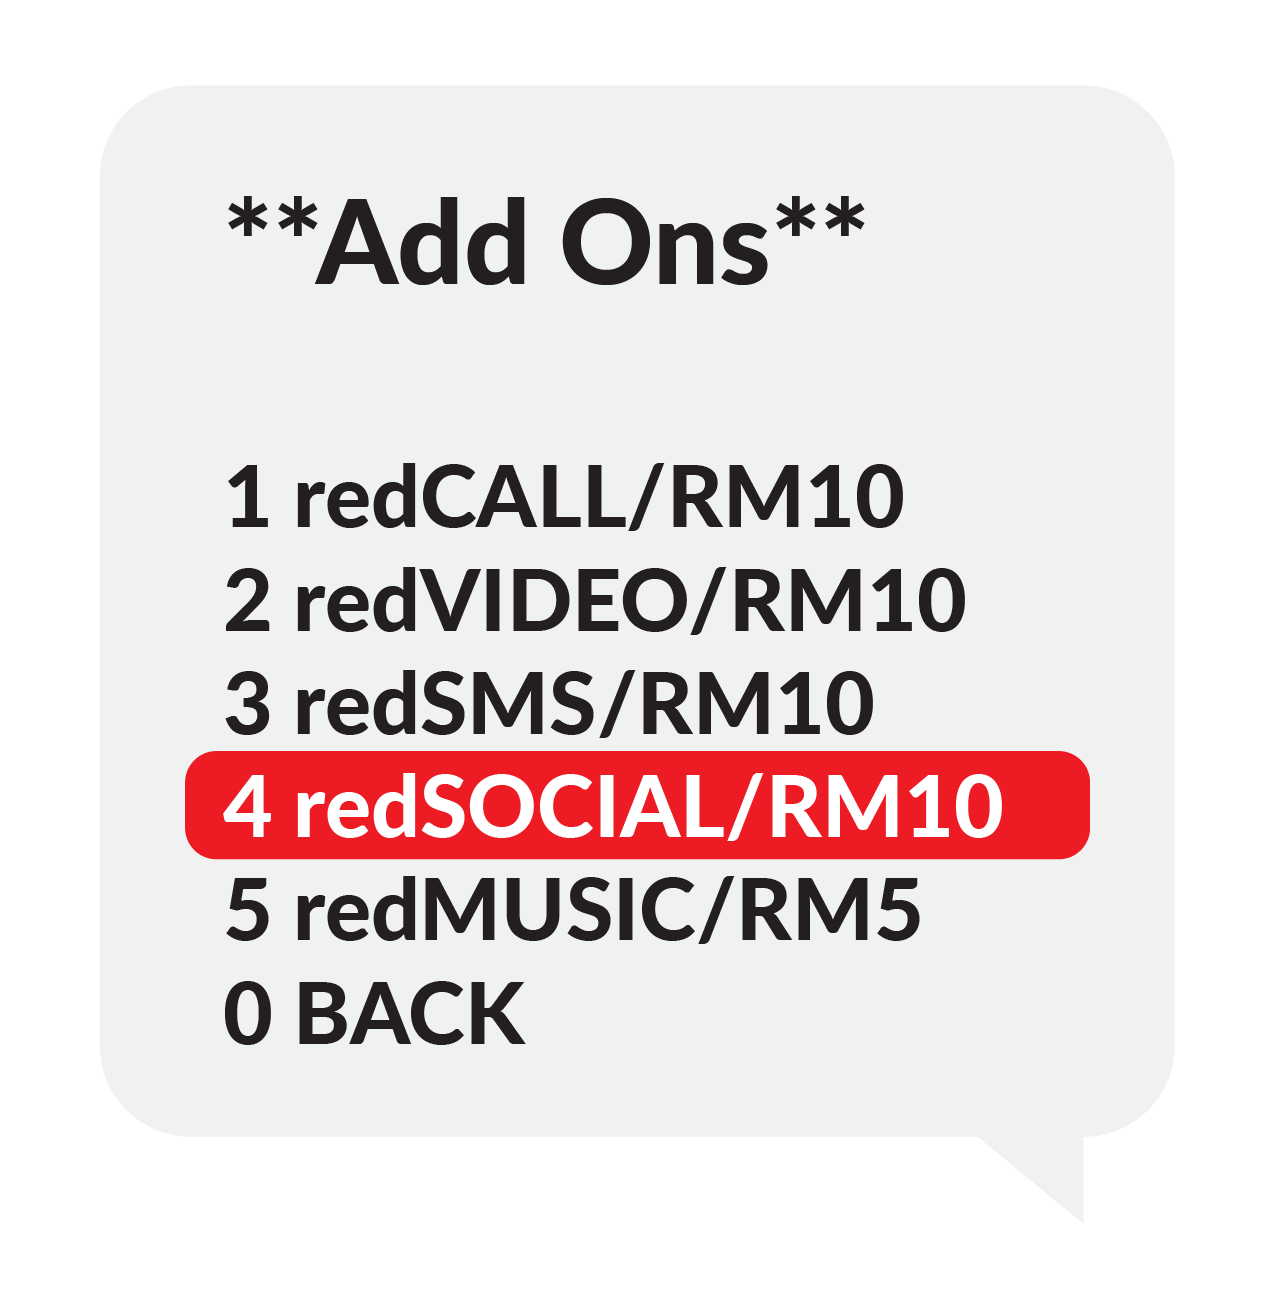 """Step 3 """"Add Ons"""", 1.redCALL/RM10 2.redVIDEO/RM10 3.redSMS/RM10 , Select 2 redVIDEO/RM10"""